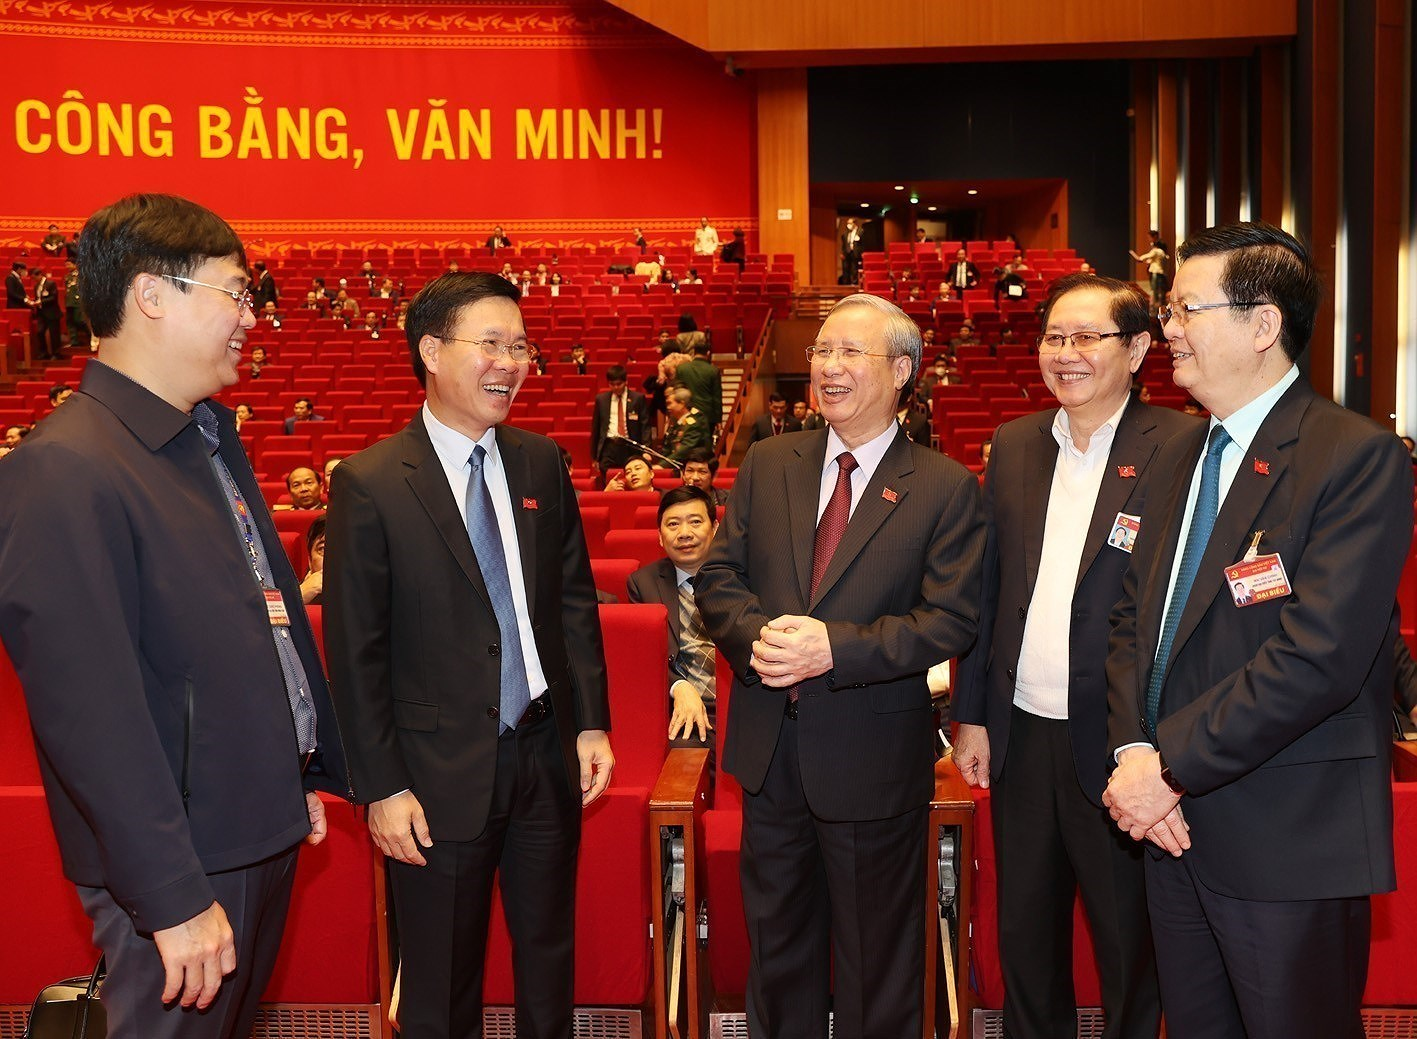 Top leaders attend the Congress's discussion on January 28 hinh anh 1